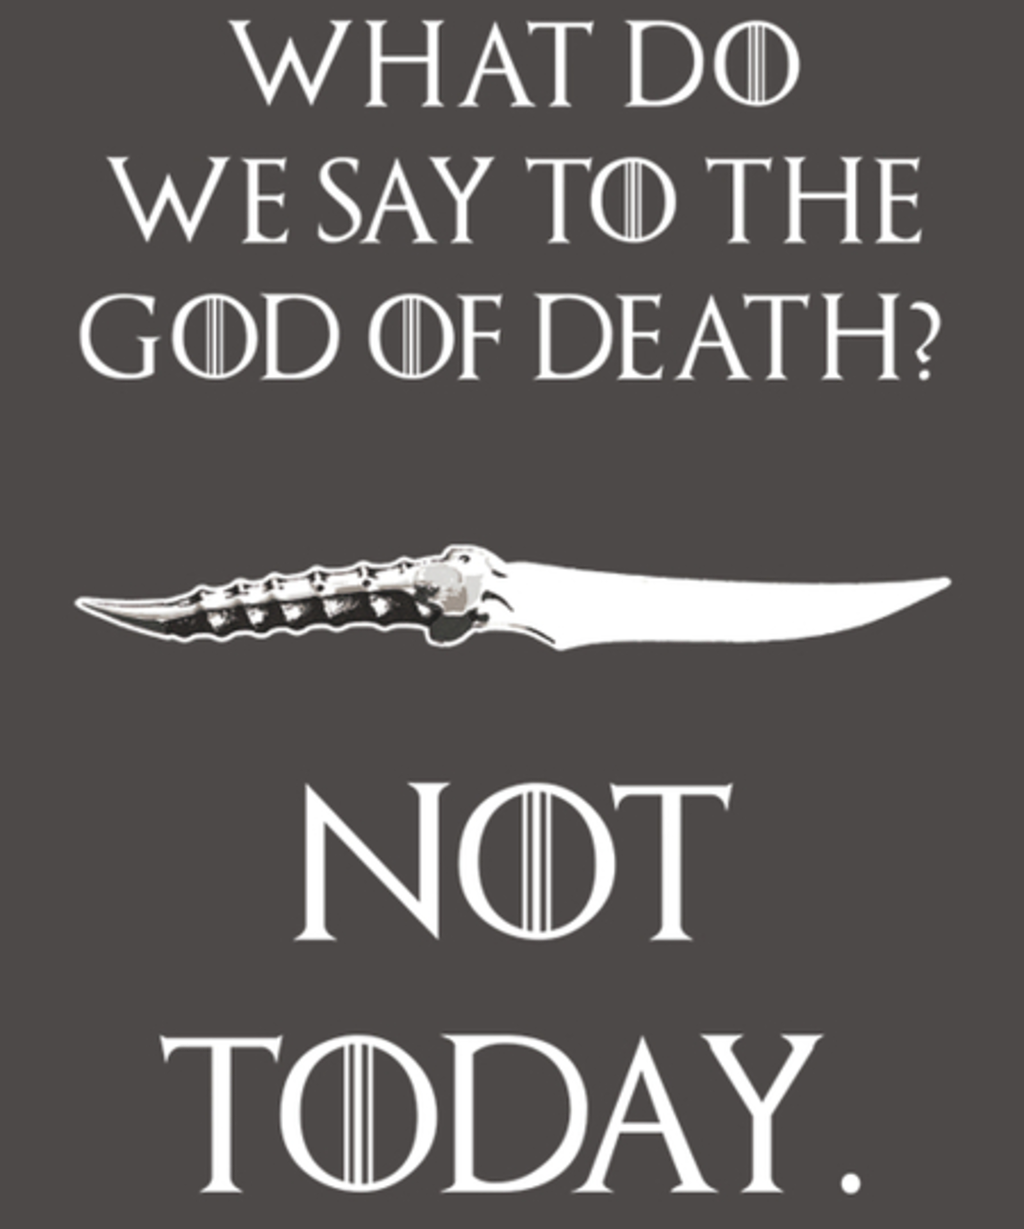 Qwertee: Not today, god of death